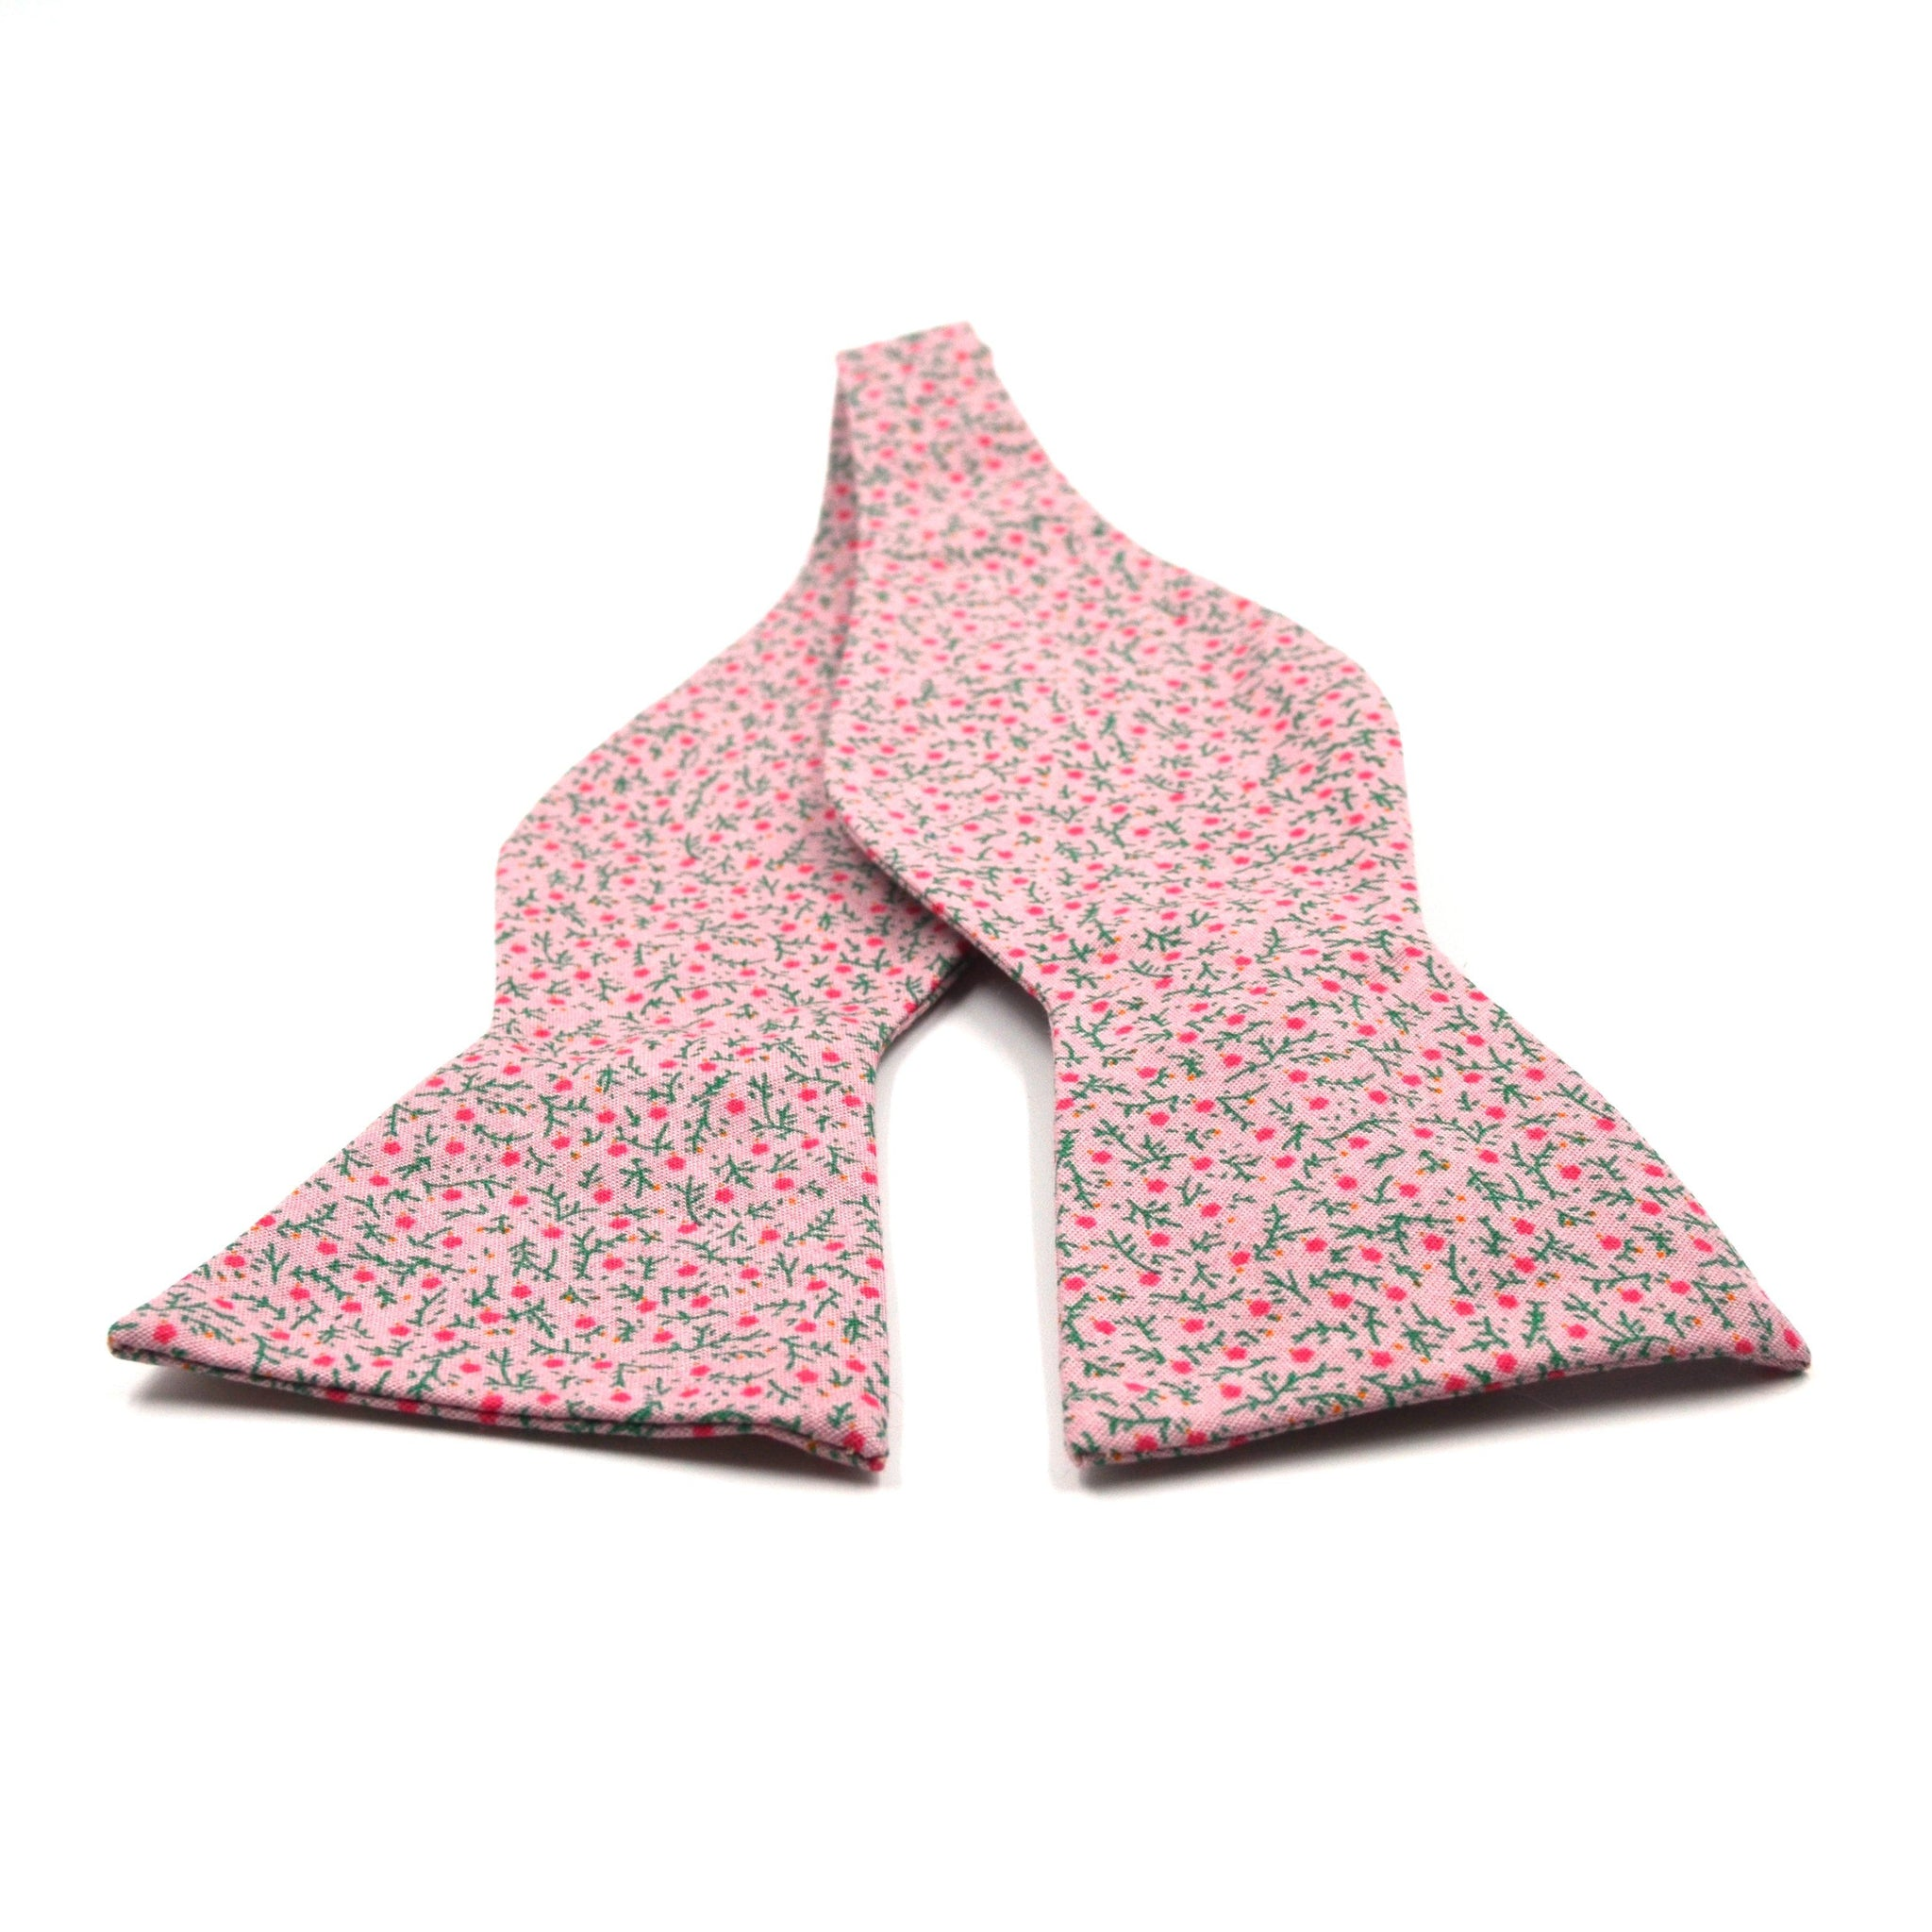 Bow Tie - Floral Strawberry Field Bow Tie